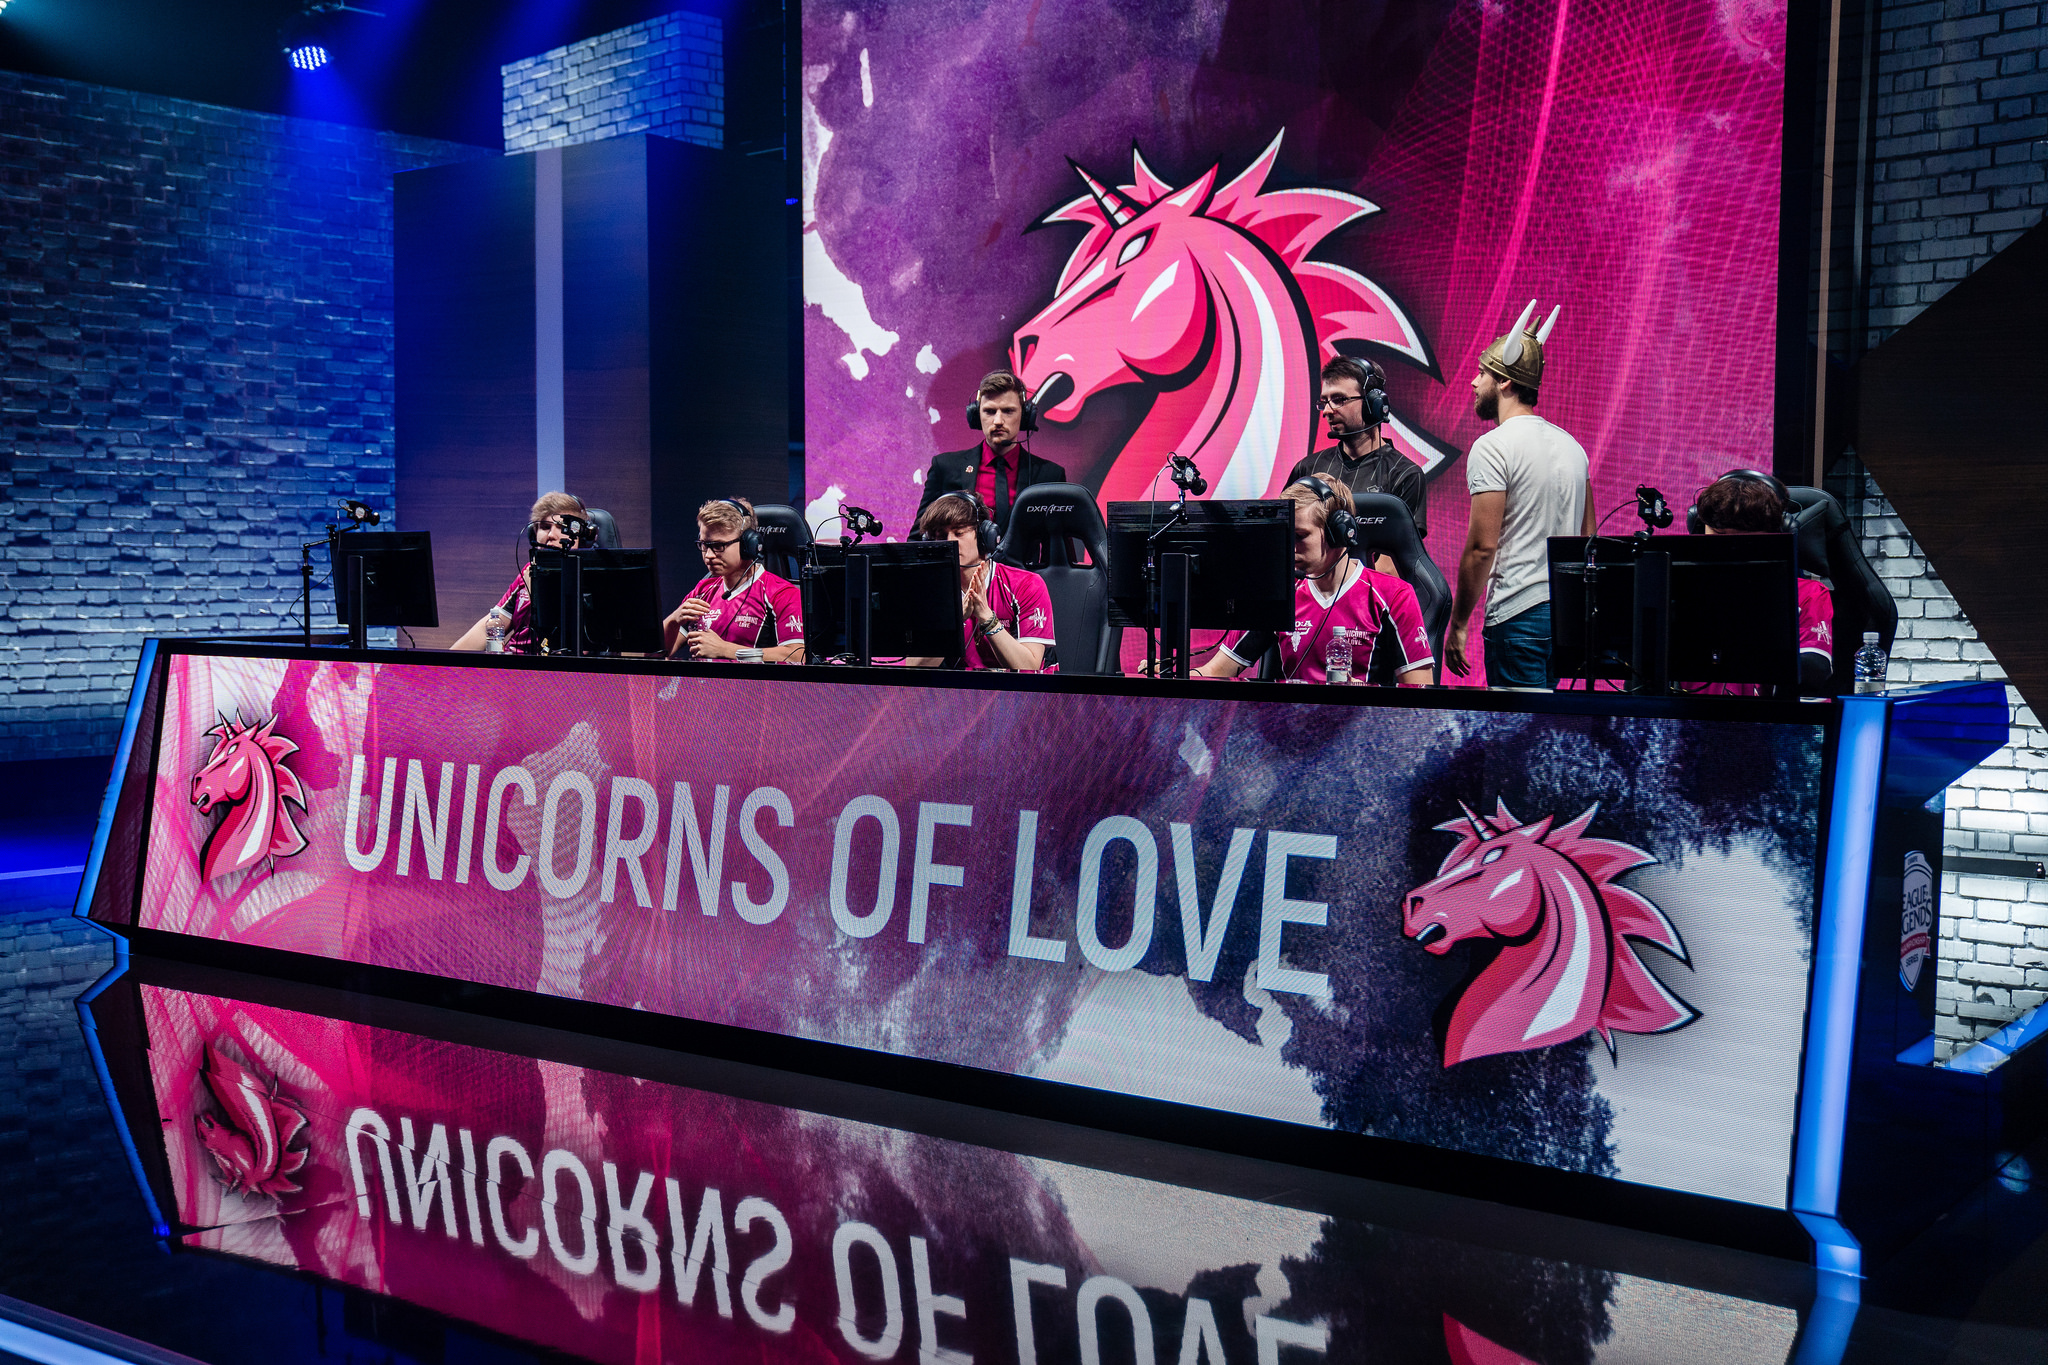 Unicorns of Love confirms it won't be a part of the EU LCS in 2019 - Dot  Esports